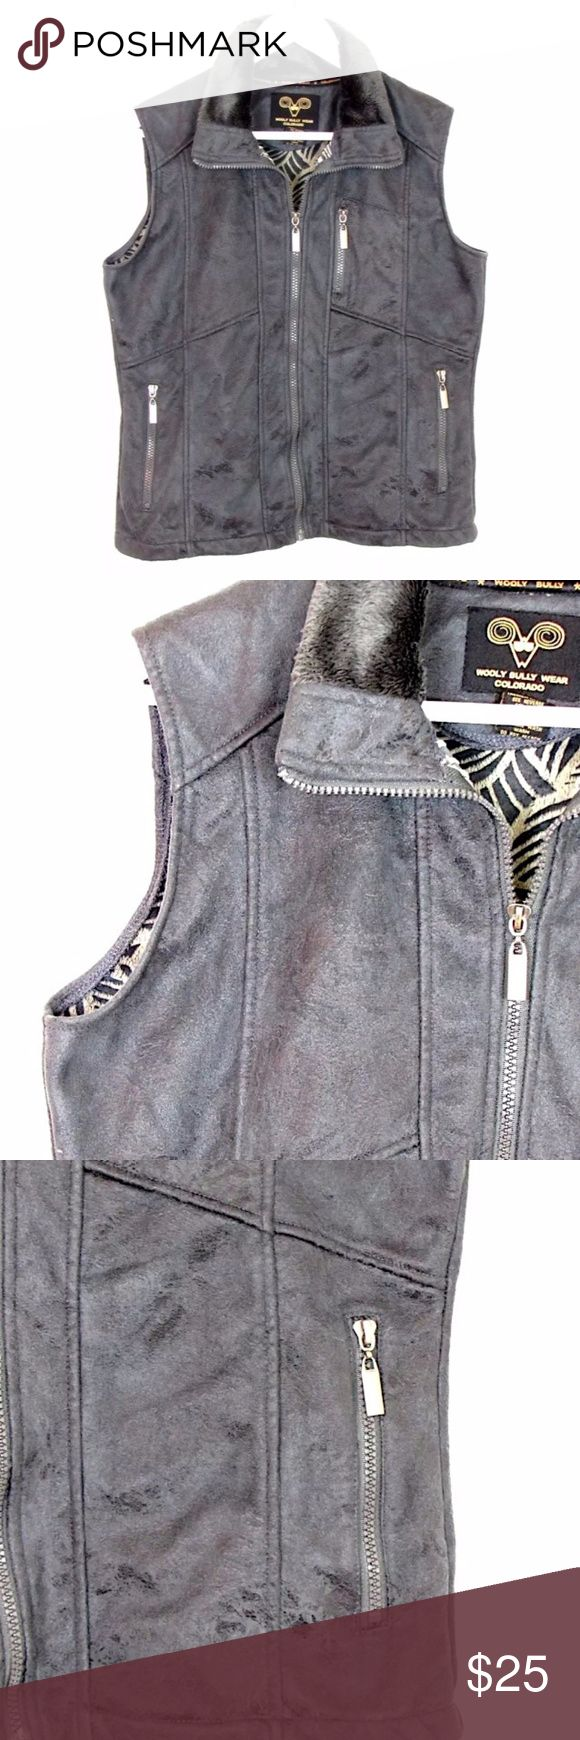 "Wooly Bully Wear Colorado Gray Fleece Vest Sz S Brand:  Wooly Bully Wear Colorado Style:  zipper front vest, fleece lined Size:  S Color/Pattern:  Gray Material:  100% polyester Measurements taken flat:  -Across under arm: 20"" -Shoulder to hem: 23"" Care Instructions: Machine wash, tumble dry  Condition: No flaws. See pictures for details. Wooly Bully Wear Jackets & Coats Vests"